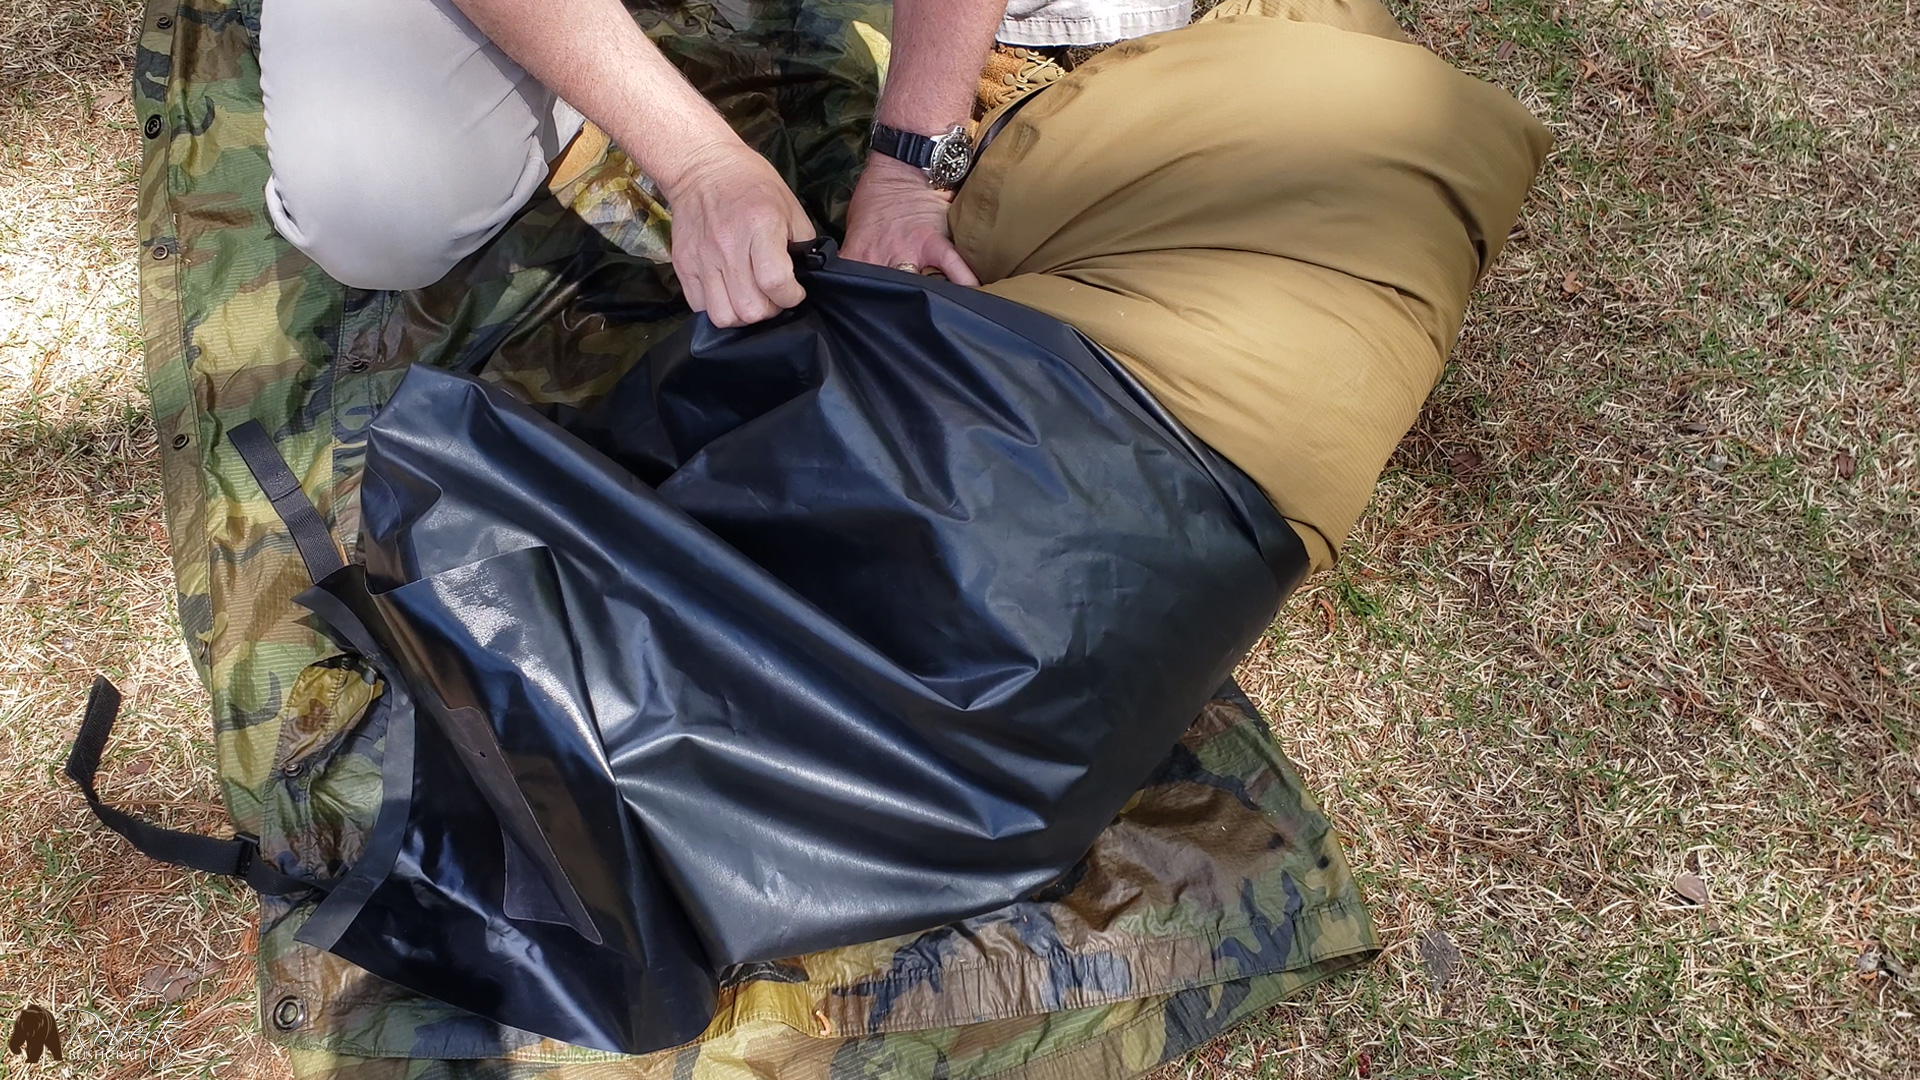 usmc military sleeping bags placed inside seal line bag